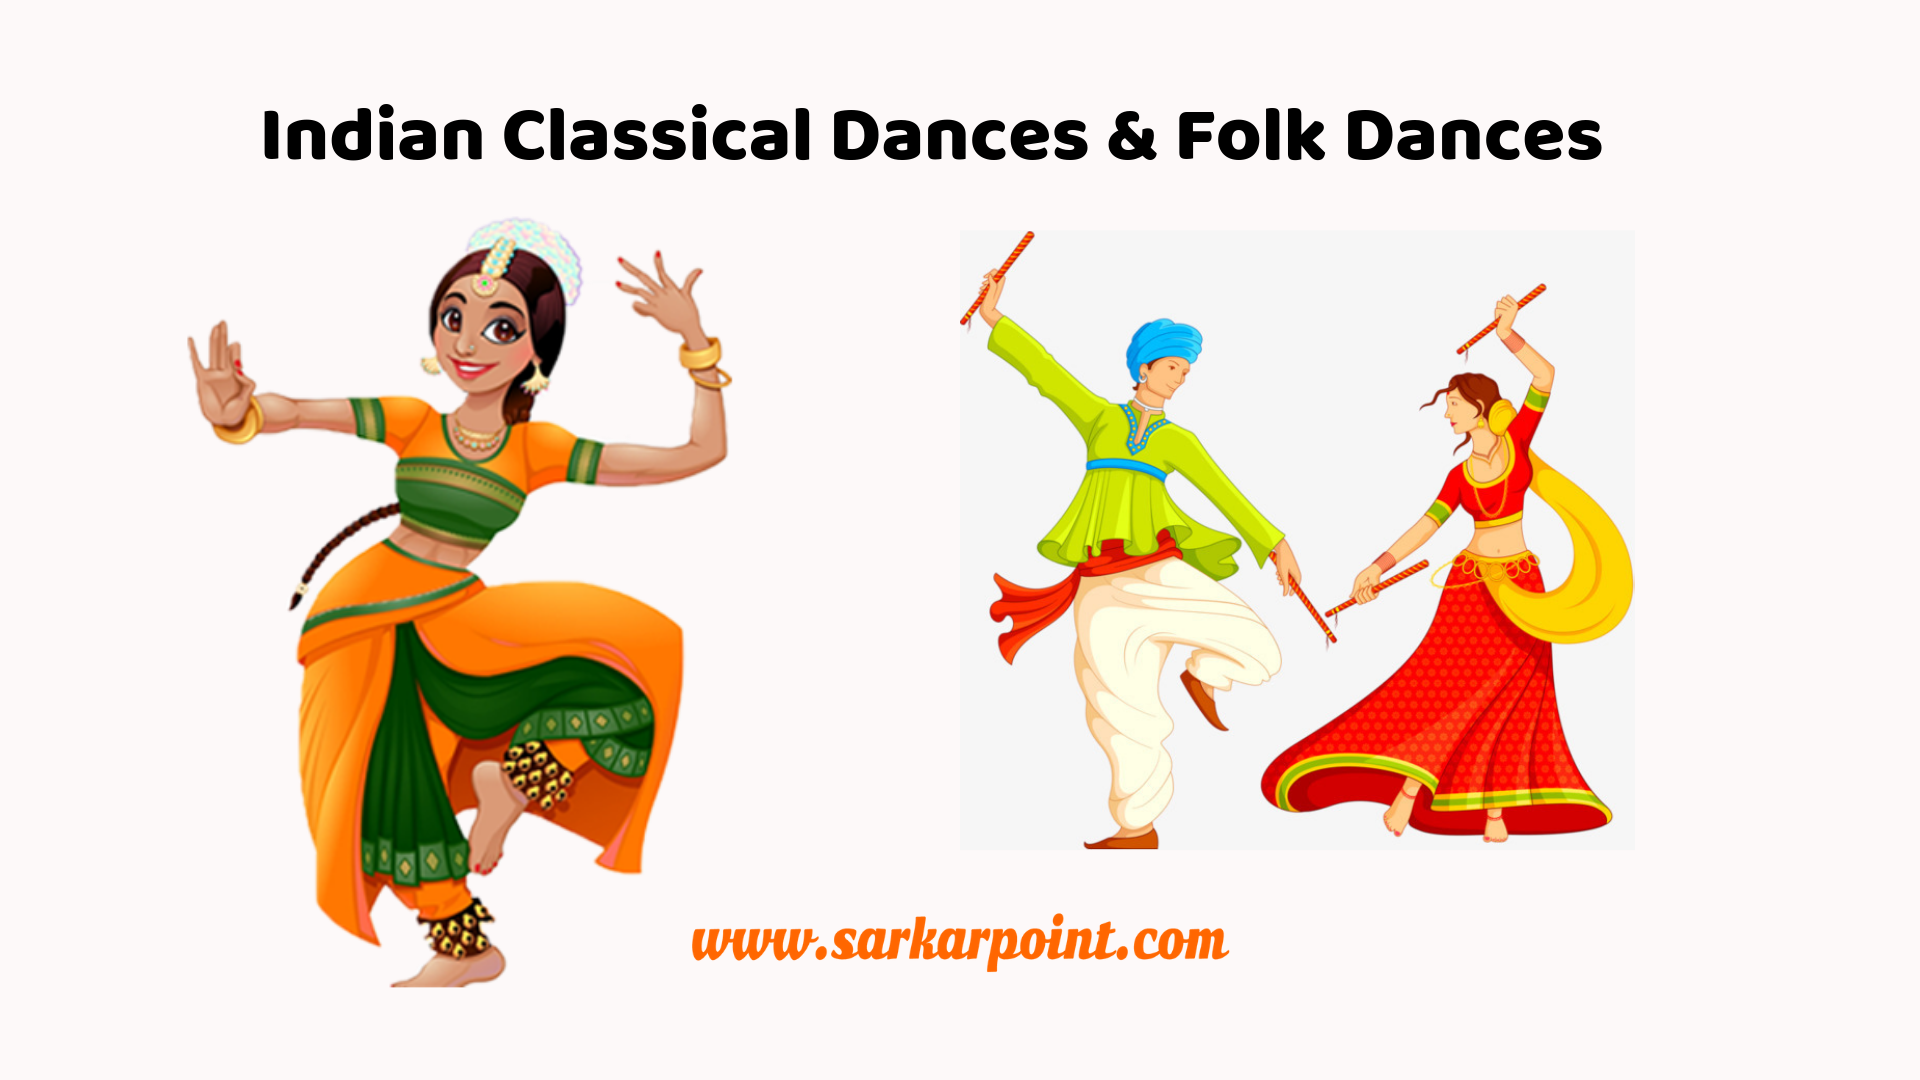 1920x1080 Indian Classical Dances & Folk Dances | Static GK - SarkarPoint